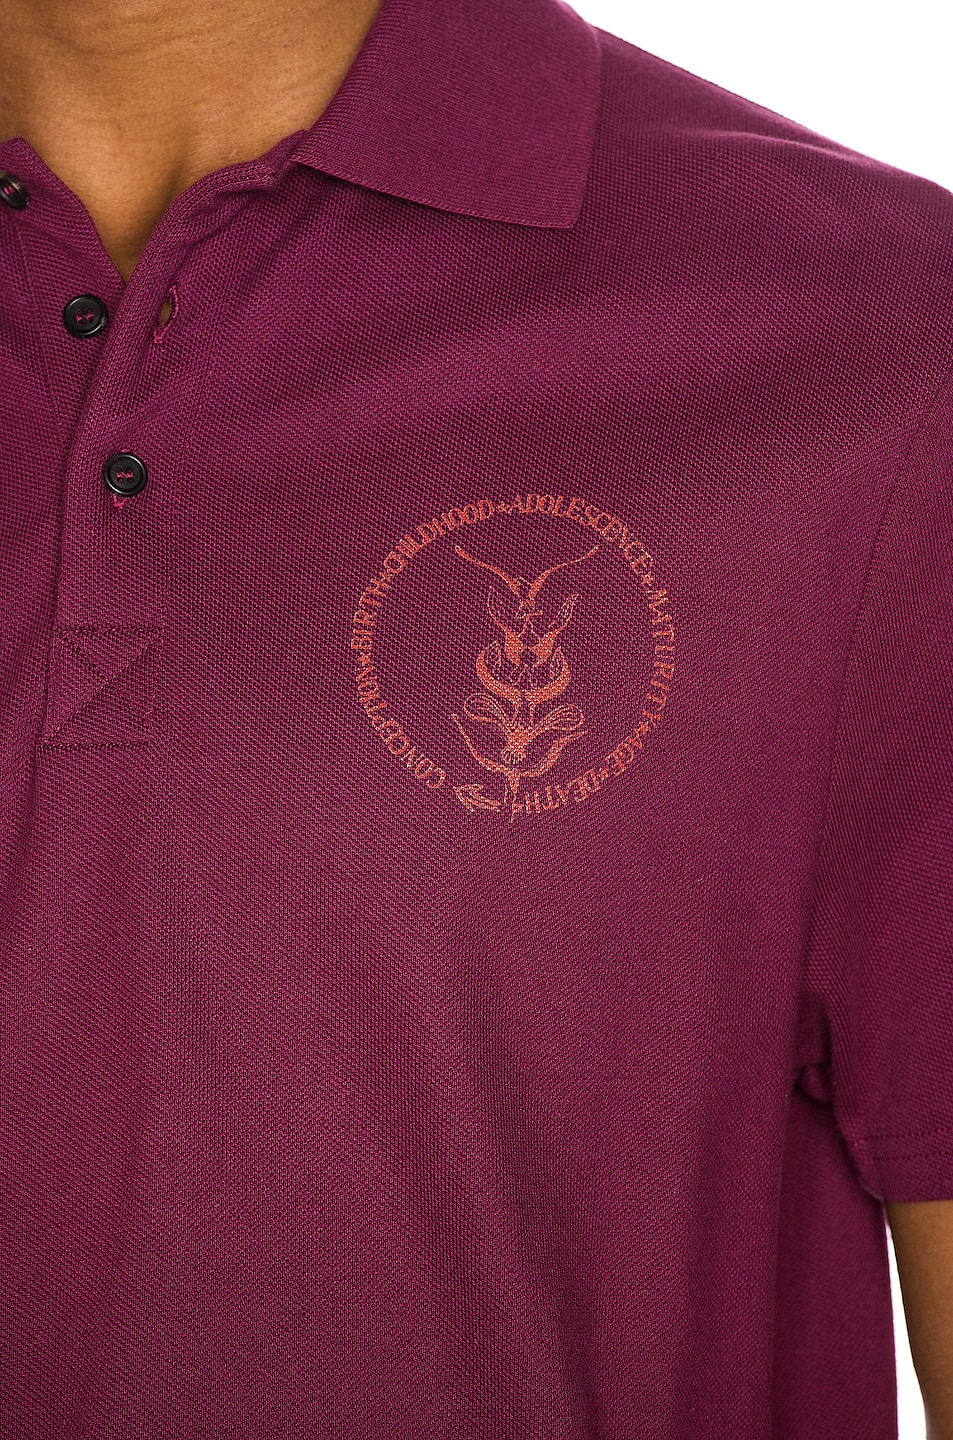 Image 5 of Wales Bonner Soul Polo in Burgundy